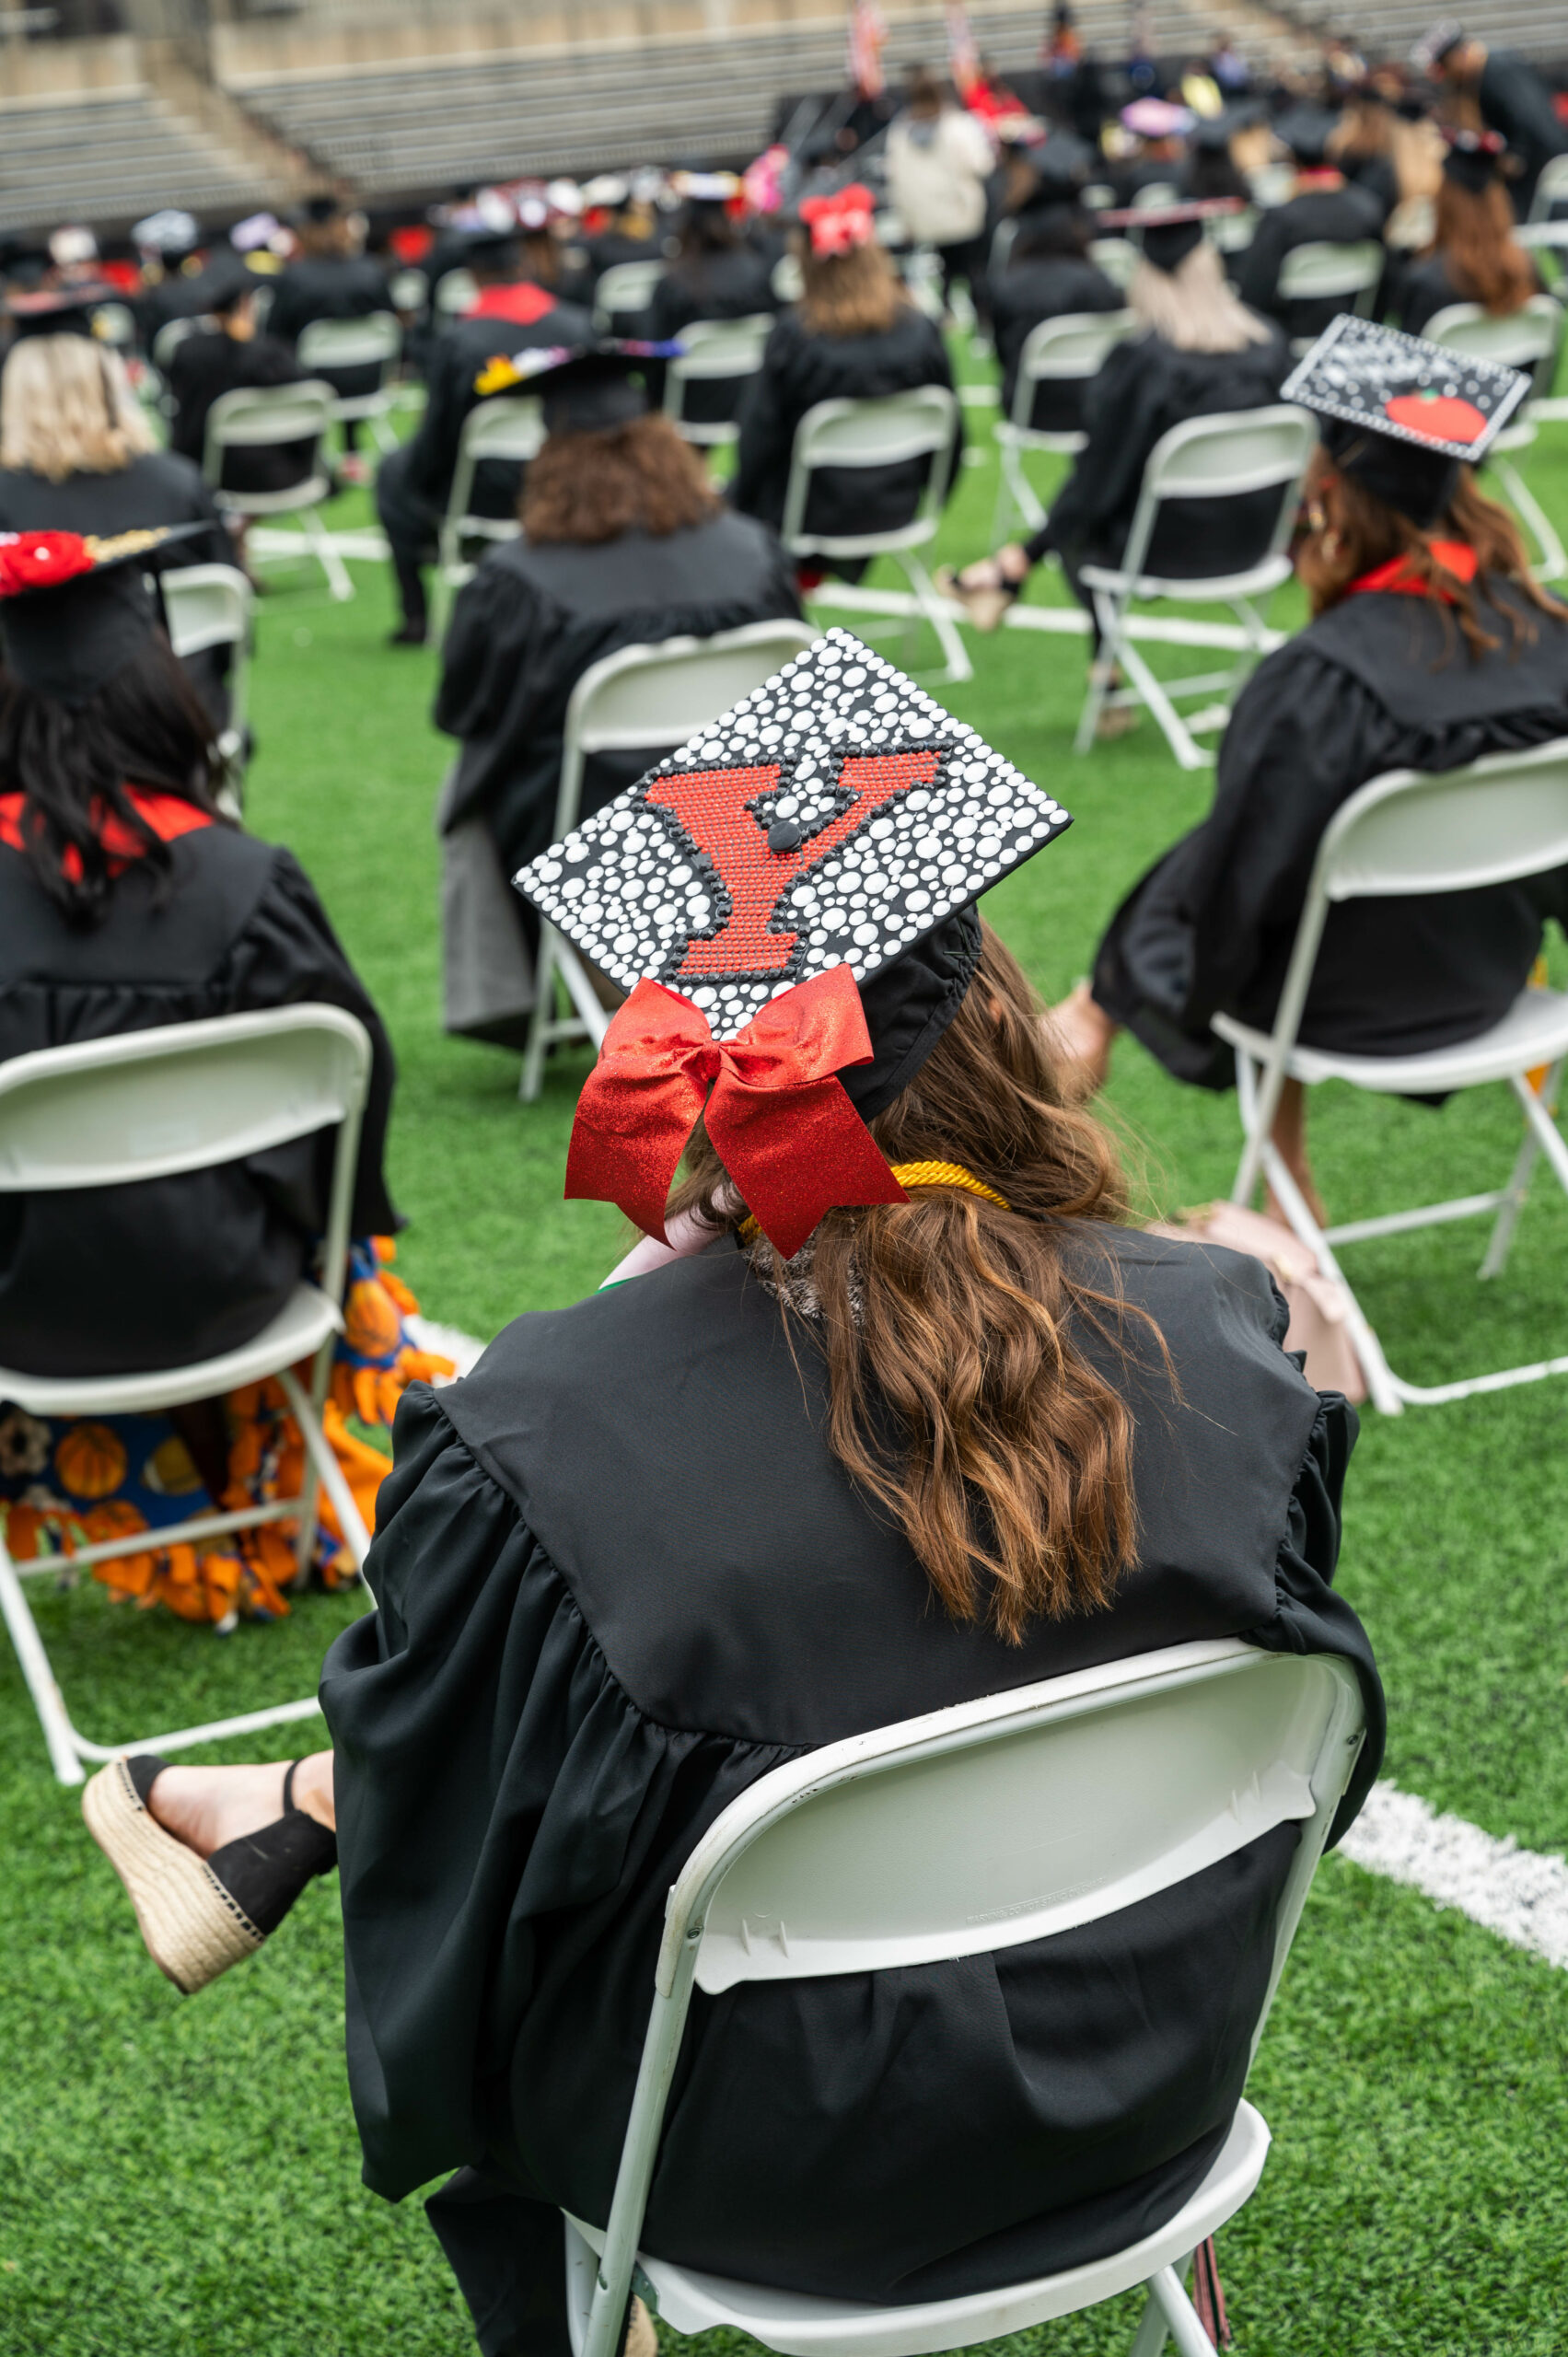 YSU student at Spring 2021 Commencement